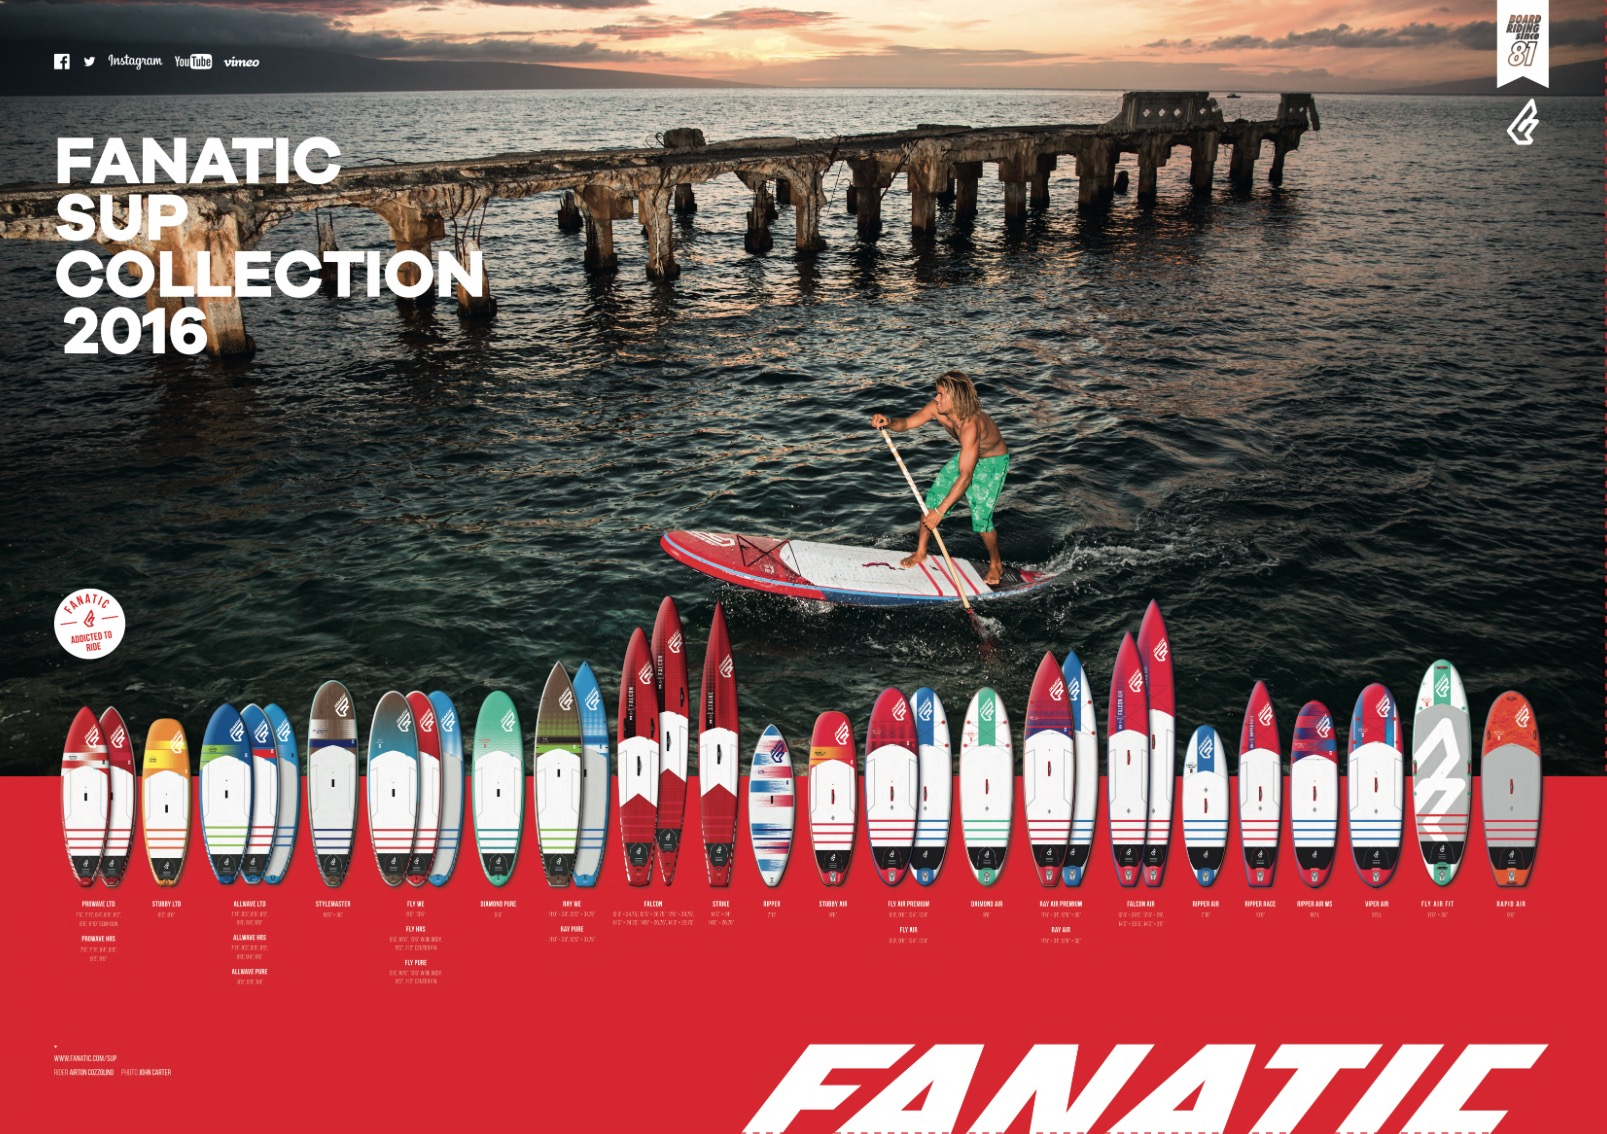 Fanatic SUP range for 2016